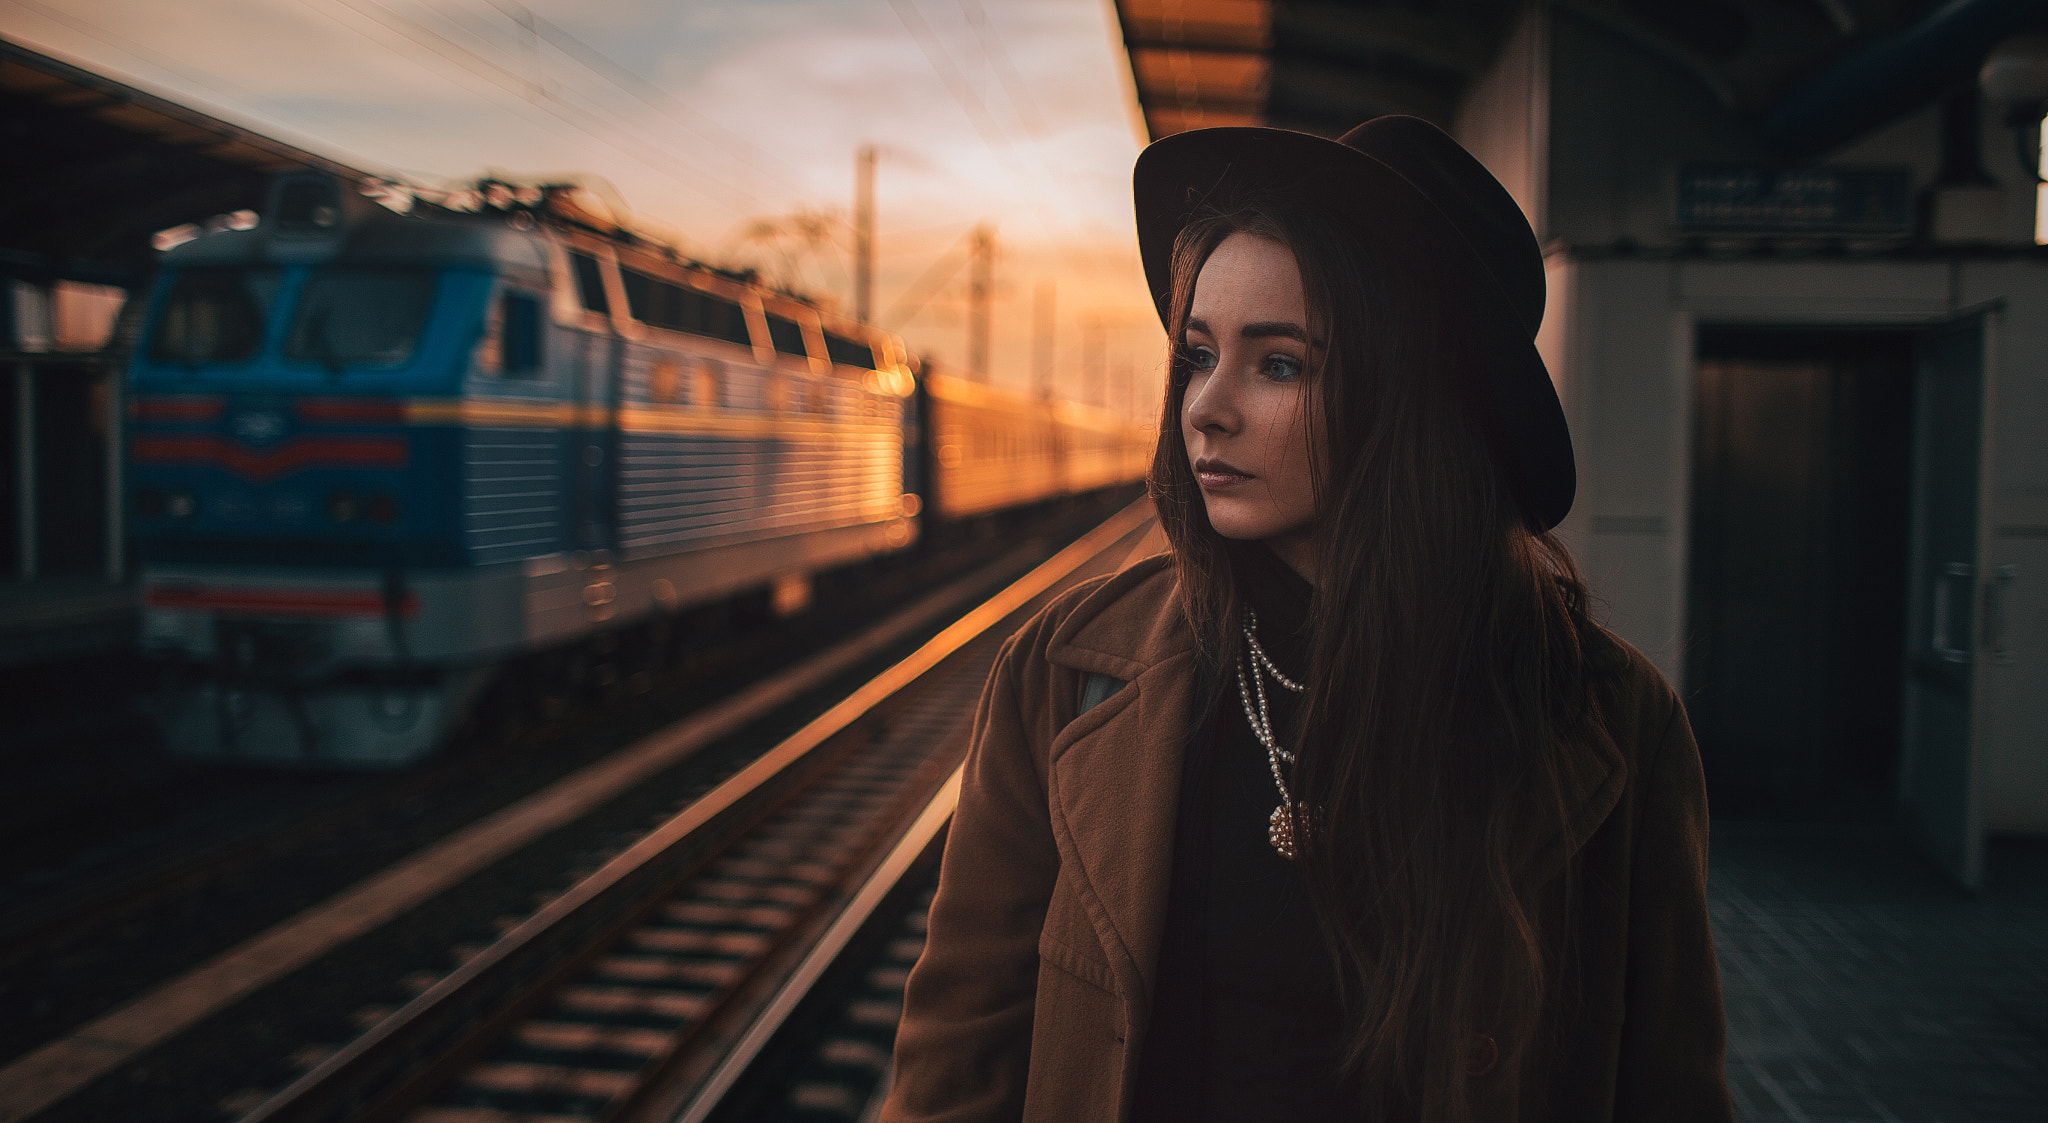 Photograph The train coming soon by Anton Muhin on 500px